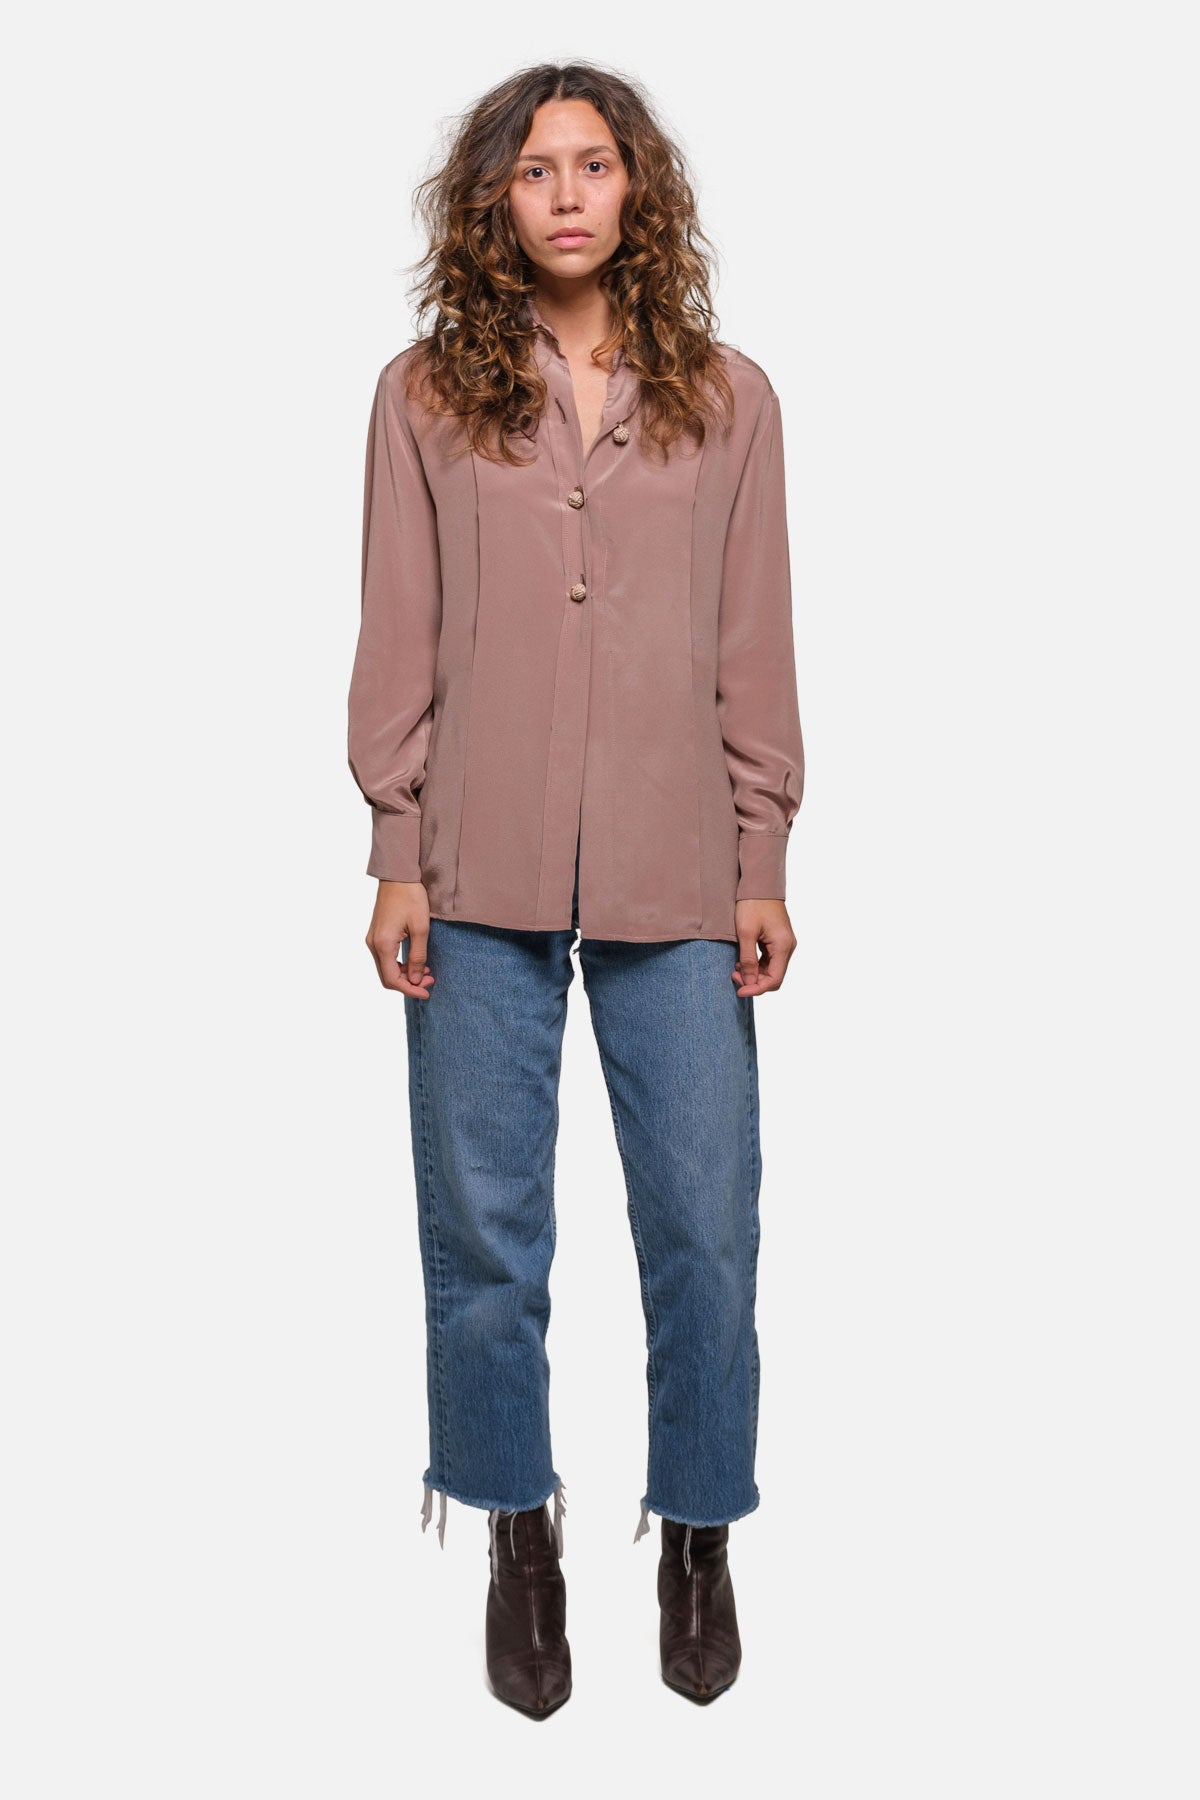 DRE BLOUSE IN MAUVE SILK - Fortune Goods